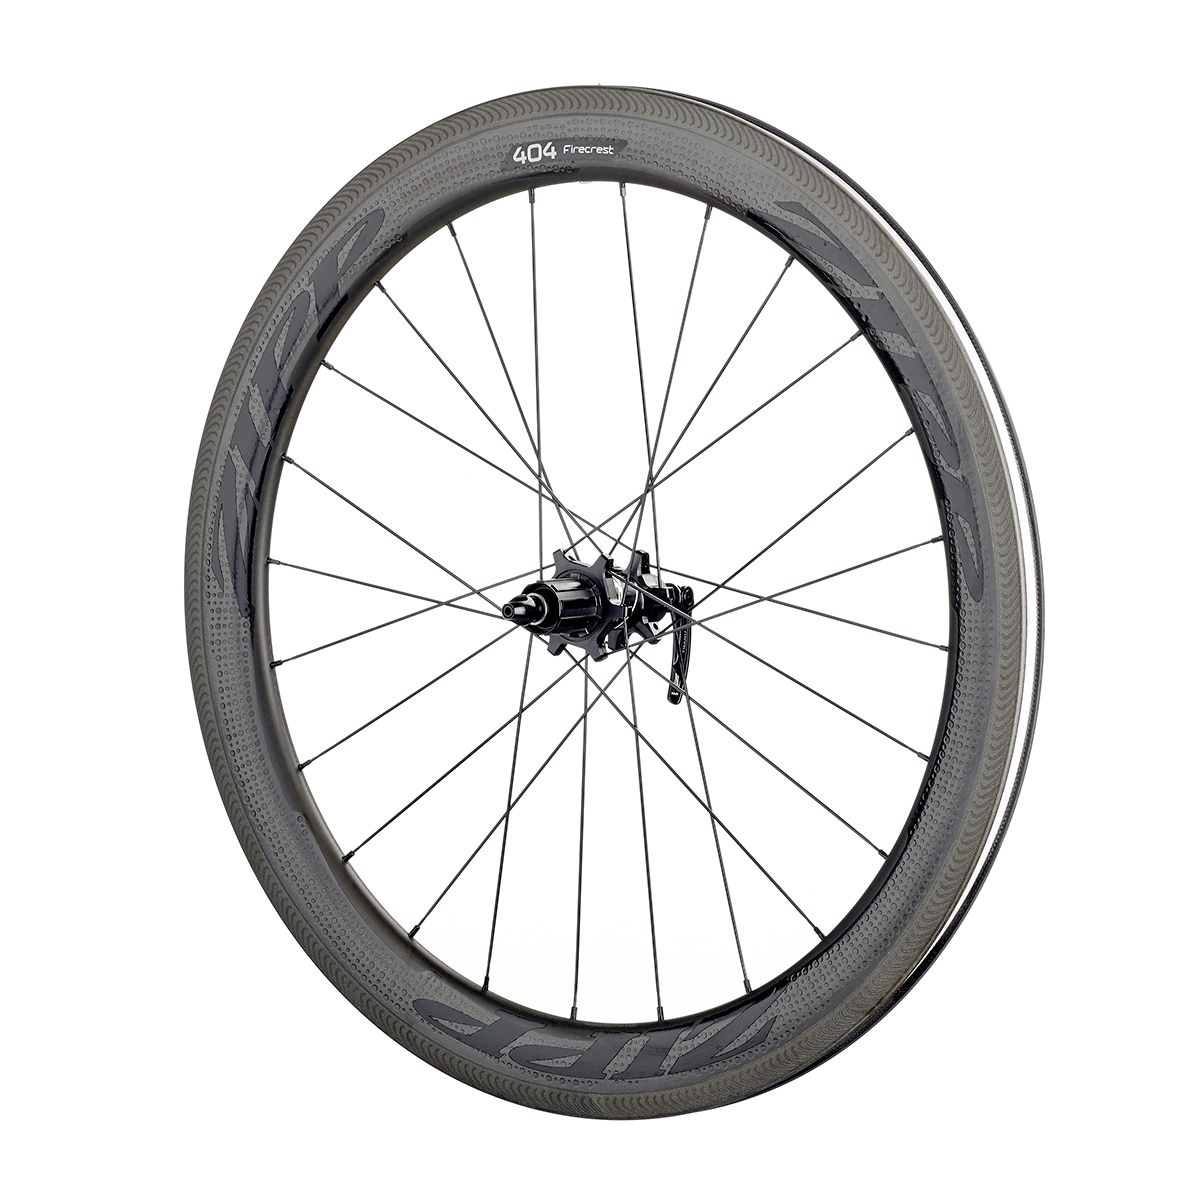 "404 Firecrest Carbon Clincher 28""/700C road rear wheel"